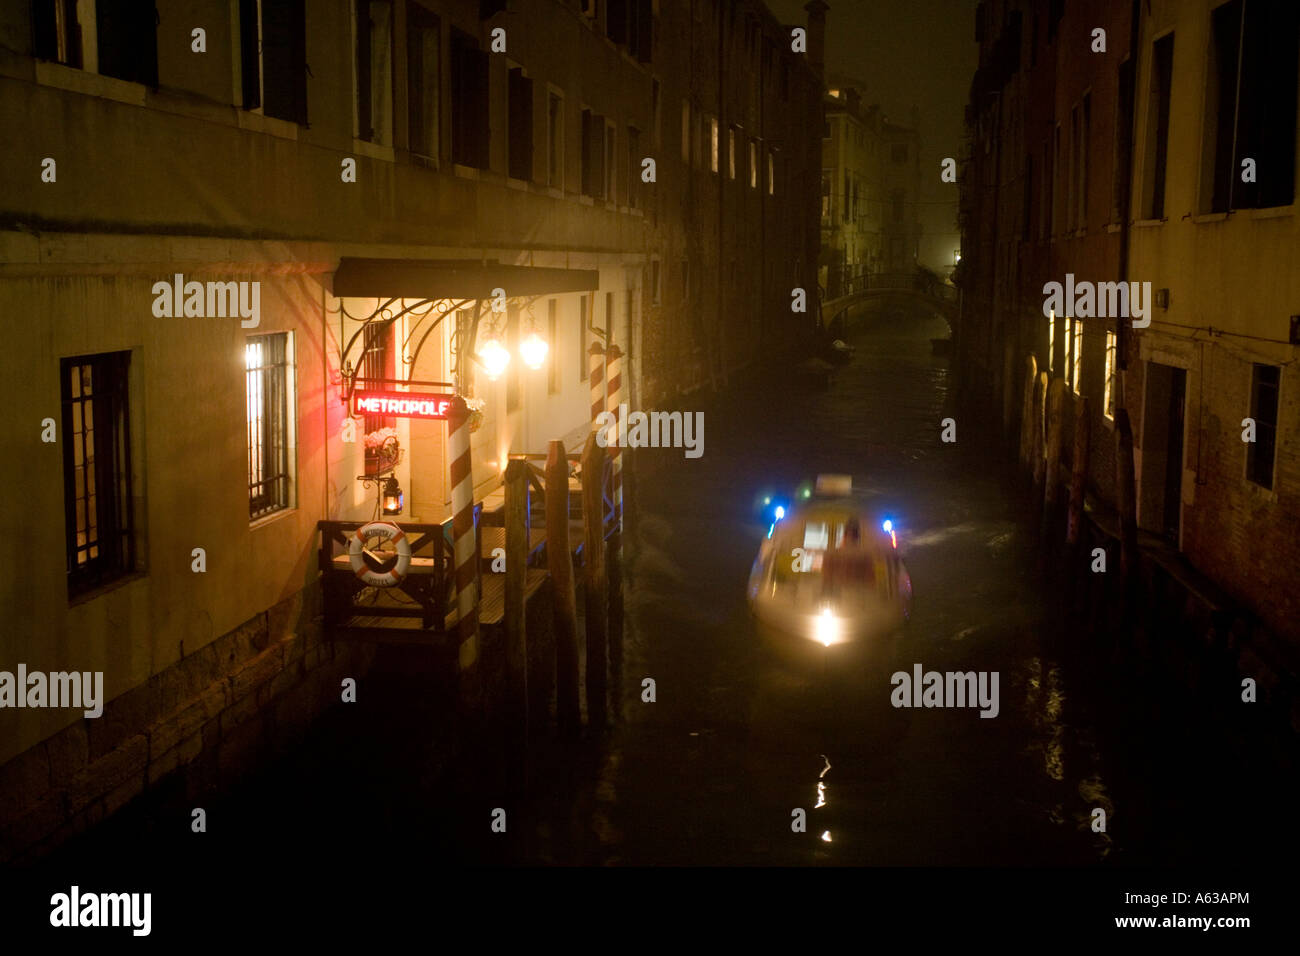 A police boat blue lights flashing travels along a canal past the Metropole Hotel on a foggy night in Venice - Stock Image